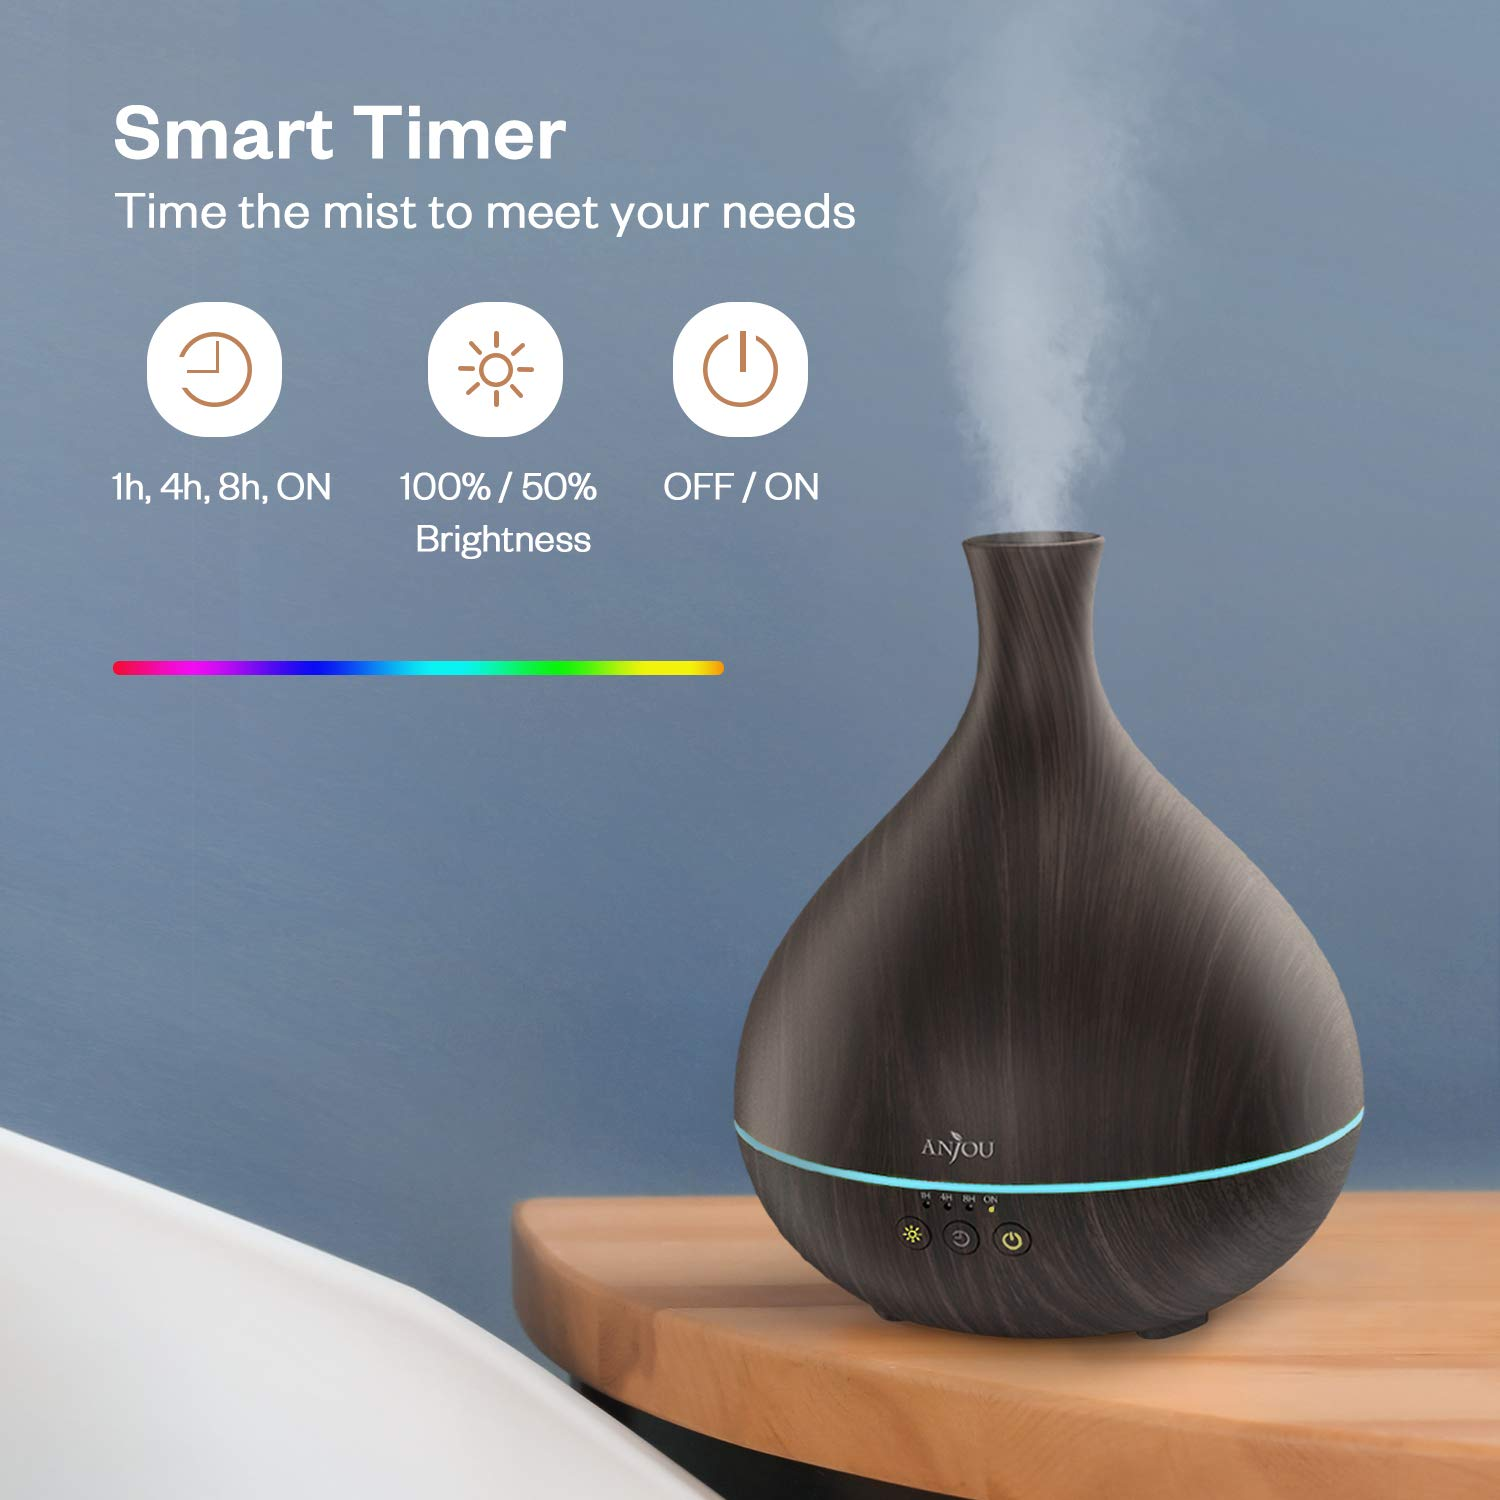 Essential Oil Diffuser,Anjou 500ml Cool Mist Humidifier,One Fill for 12hrs Consistent Scent & Aromatherapy, World's First Diffuser with Patented Oil Flow System for Home & Office by Anjou